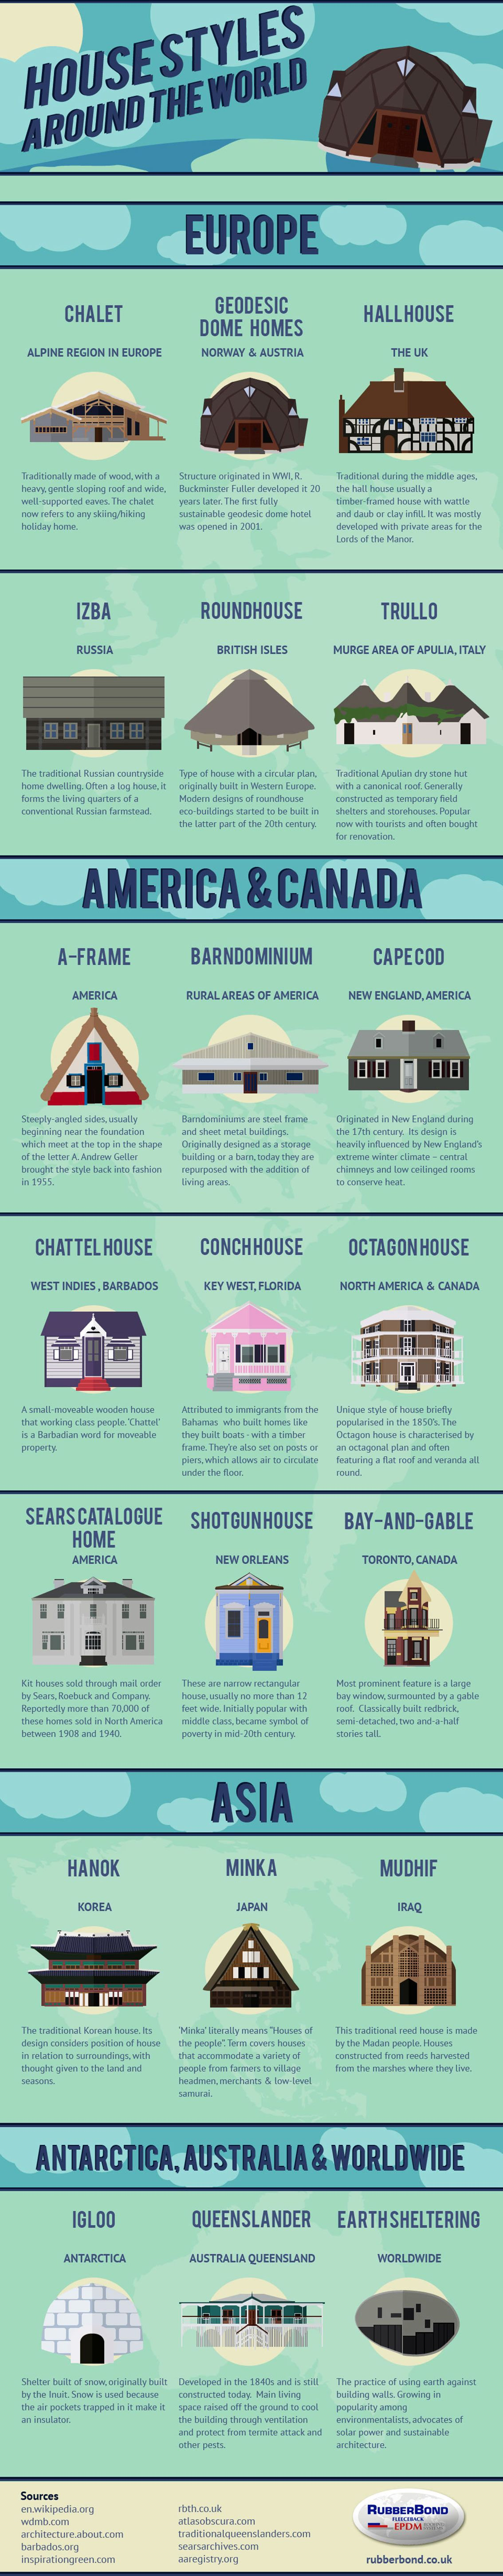 Amazing Houses Around the World - Architecture Infographic #architect #house